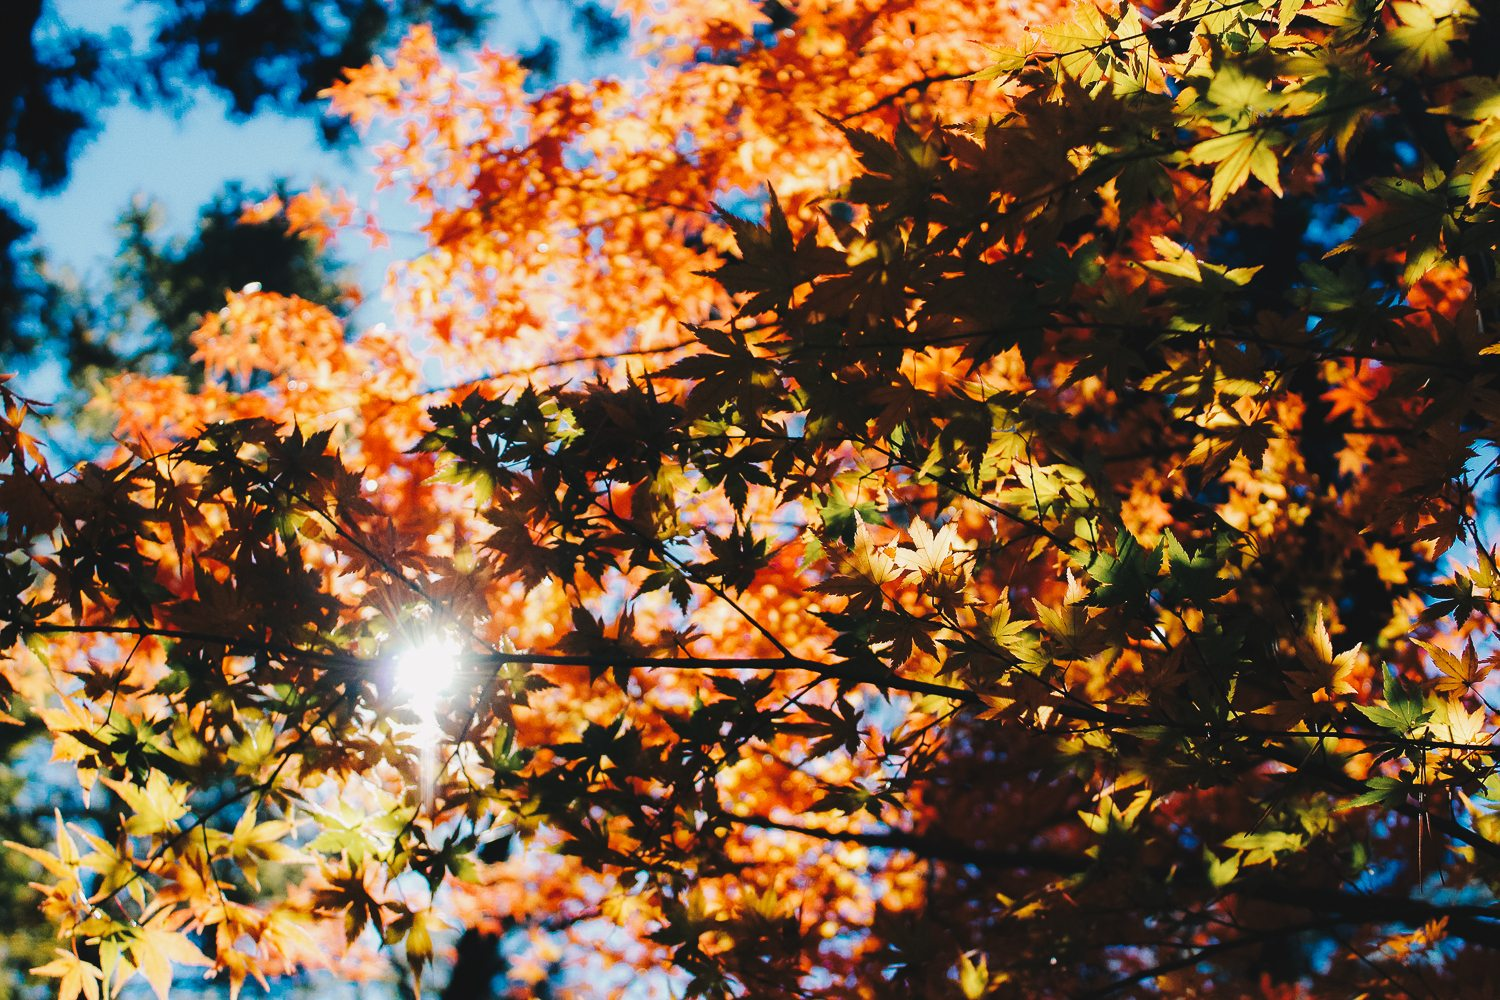 Sun shining through the leaves as they turn orange with autumn season